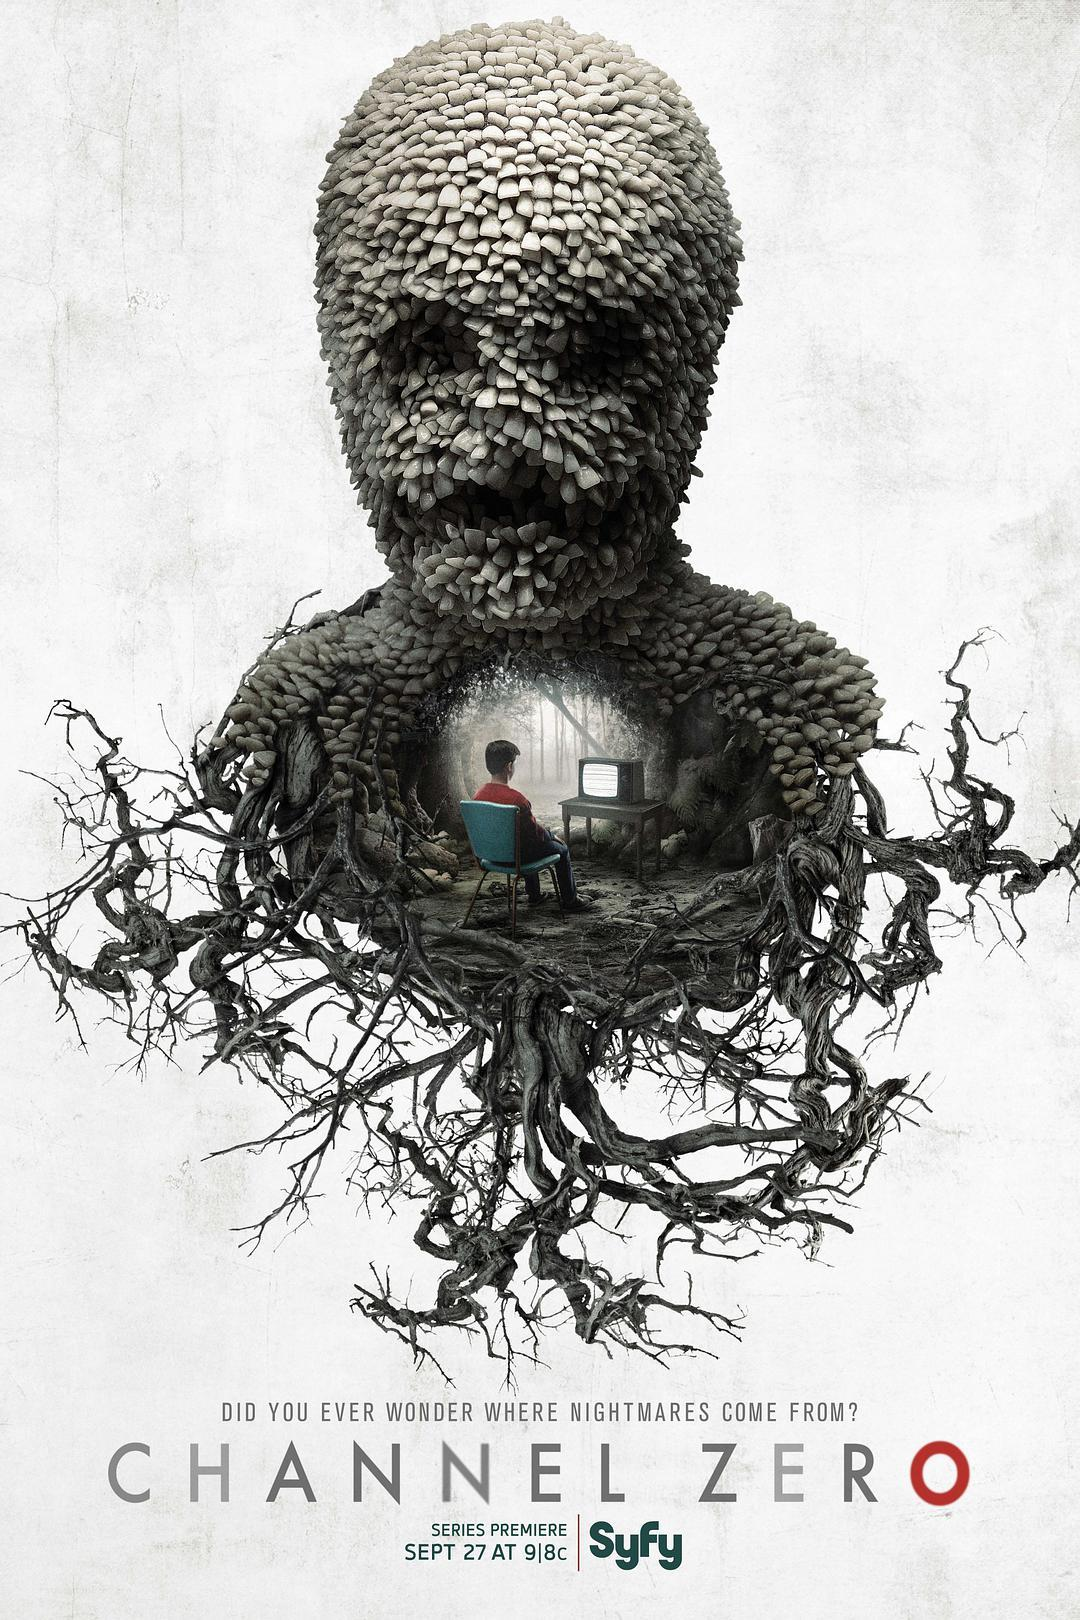 Channel Zero Season 1